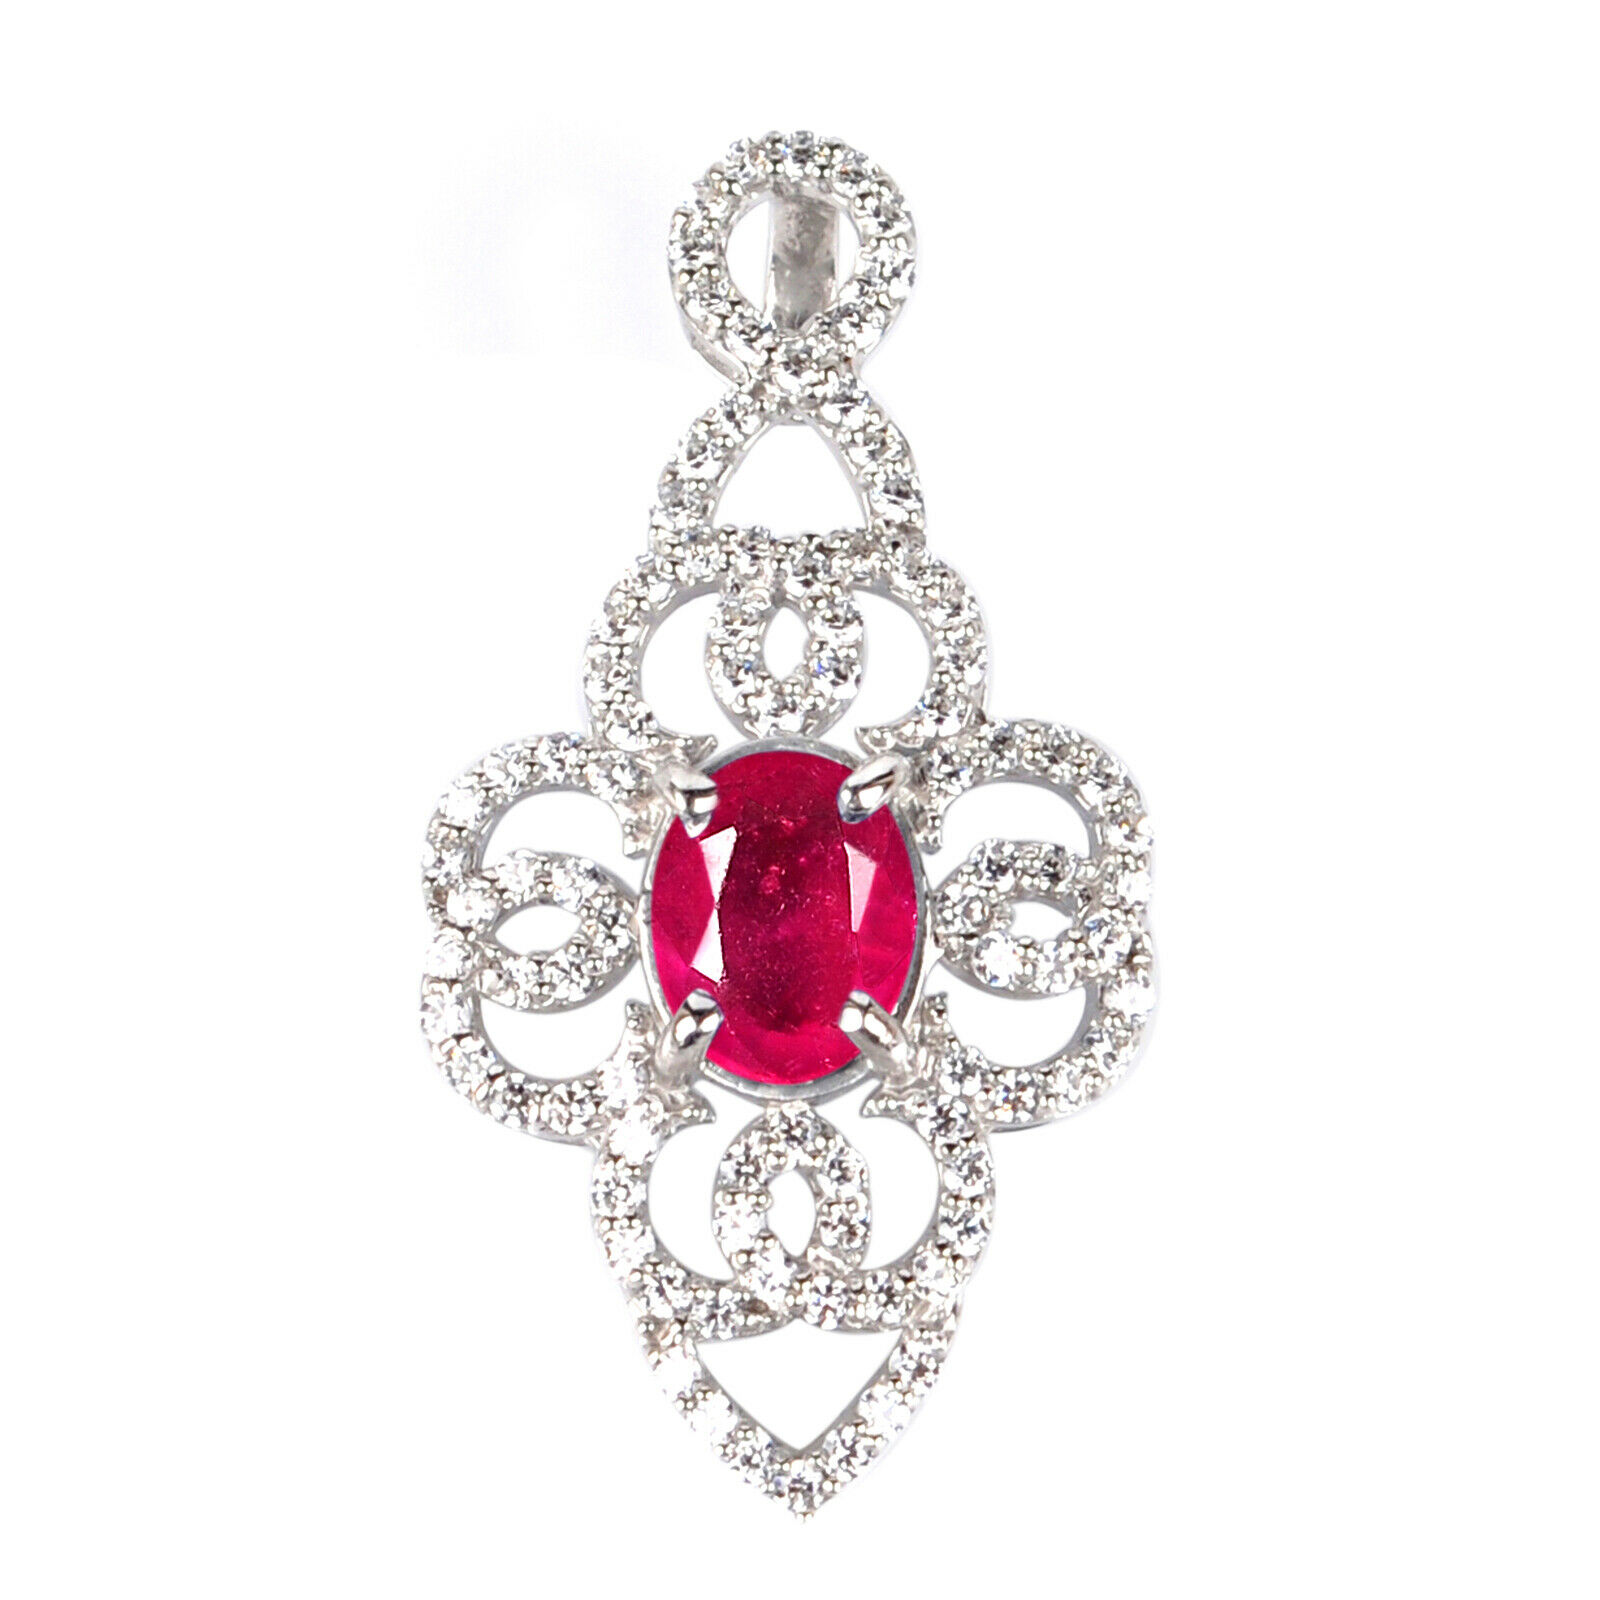 2.40ct Gold Natural Red Ruby Egl Certified Diamond Ring In 14kt Real White Gold Fine Jewelry